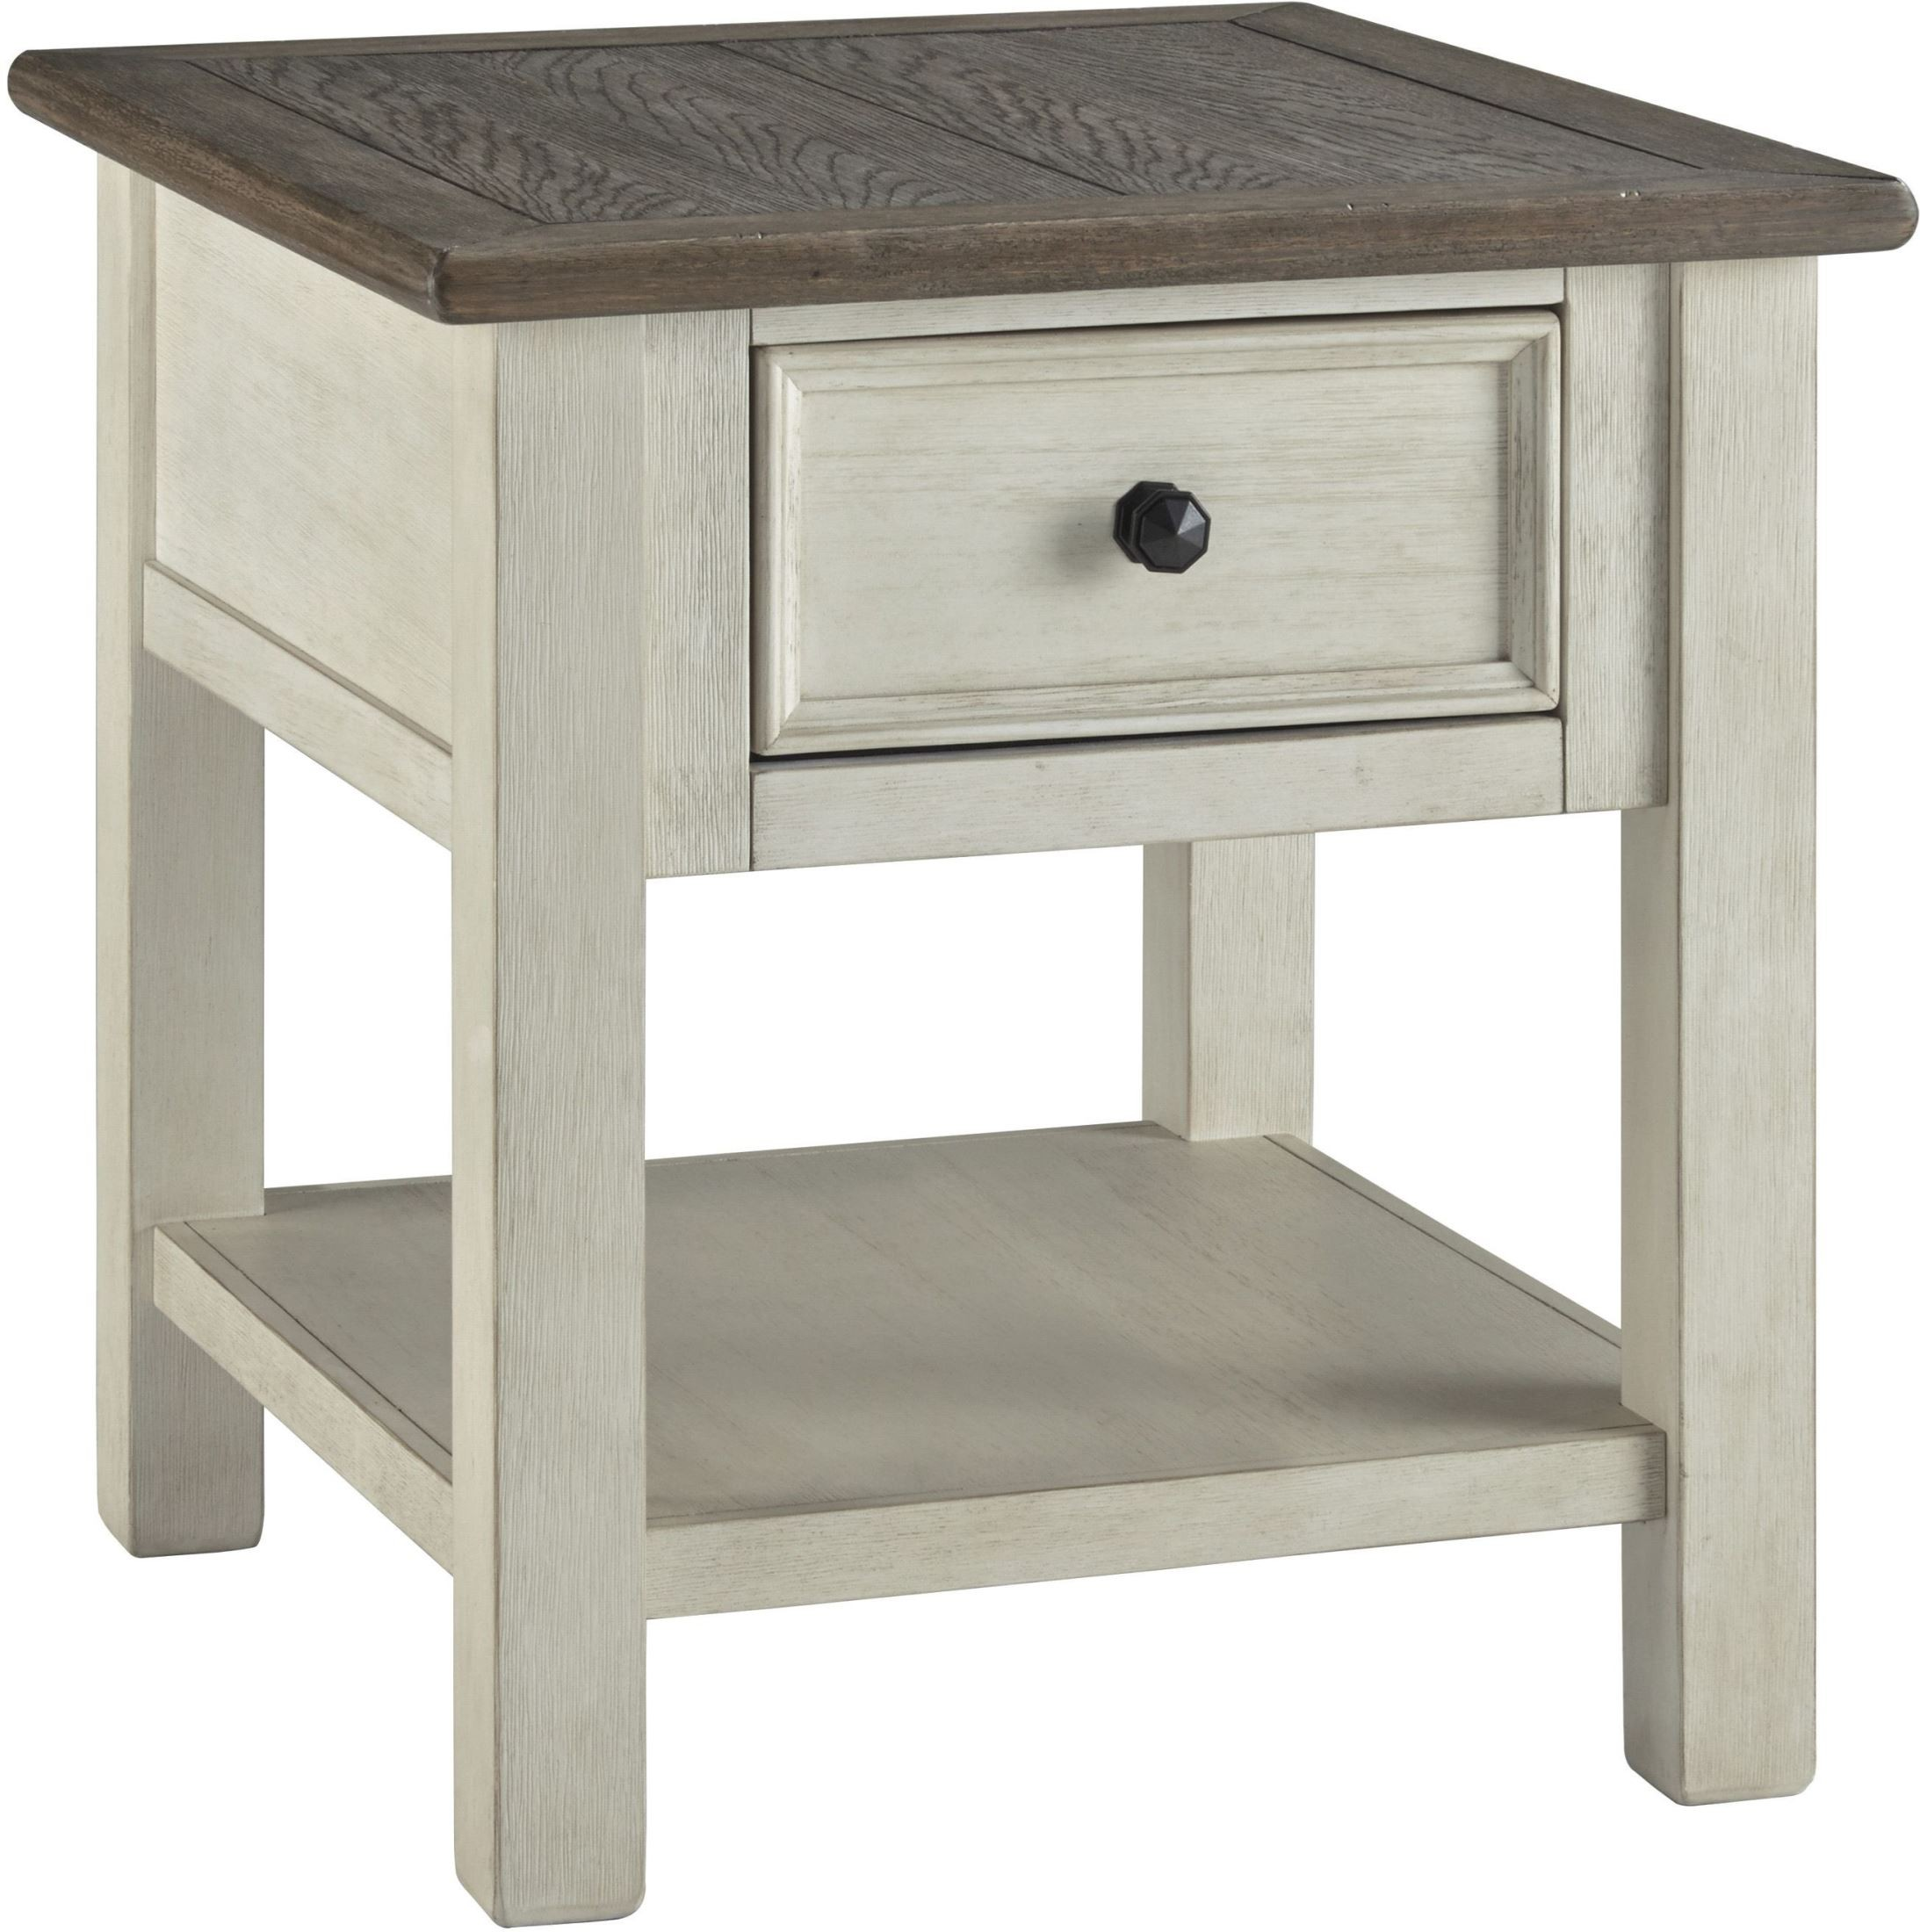 bolanburg weathered gray rectangular end table from ashley mirrored threshold fretwork accent teal wash bar height legs solid wood coffee with drawers wrought iron furniture